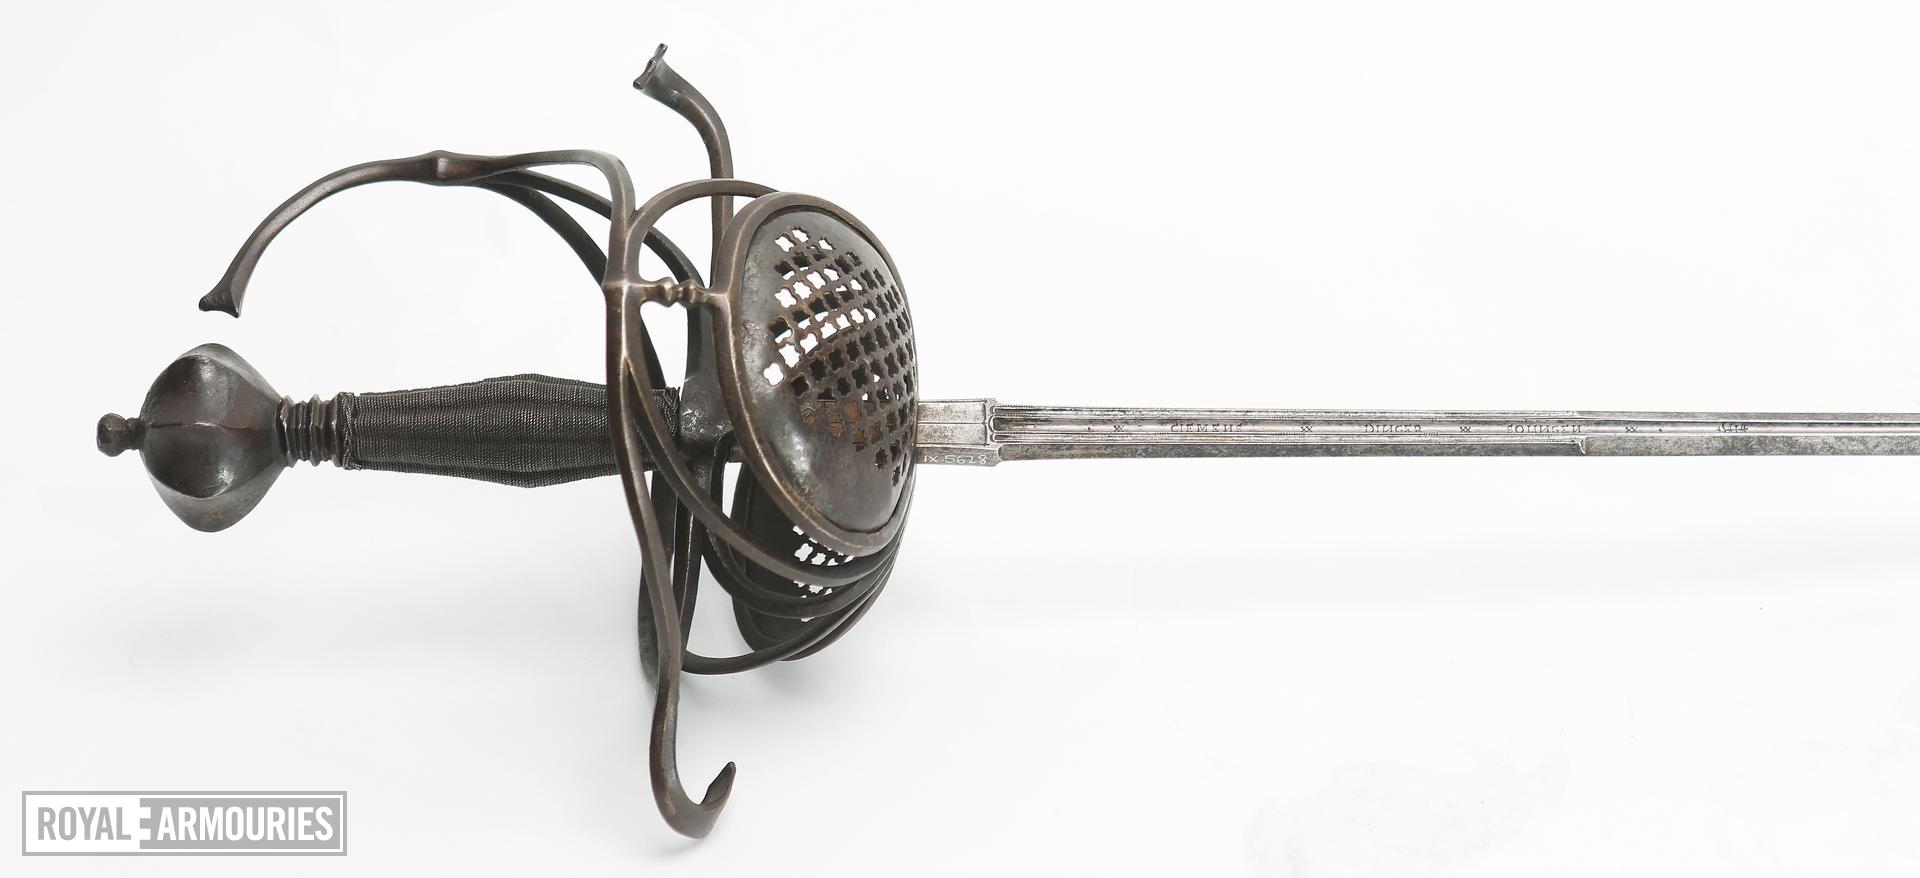 'Pappenheim' rapier, modified for duelling and associated with Christian Carl Graf von Giech. Stamped 'CLEMENS DINGER ME FECIT' and 'CLEMENS DINGER SOLINGEN'.